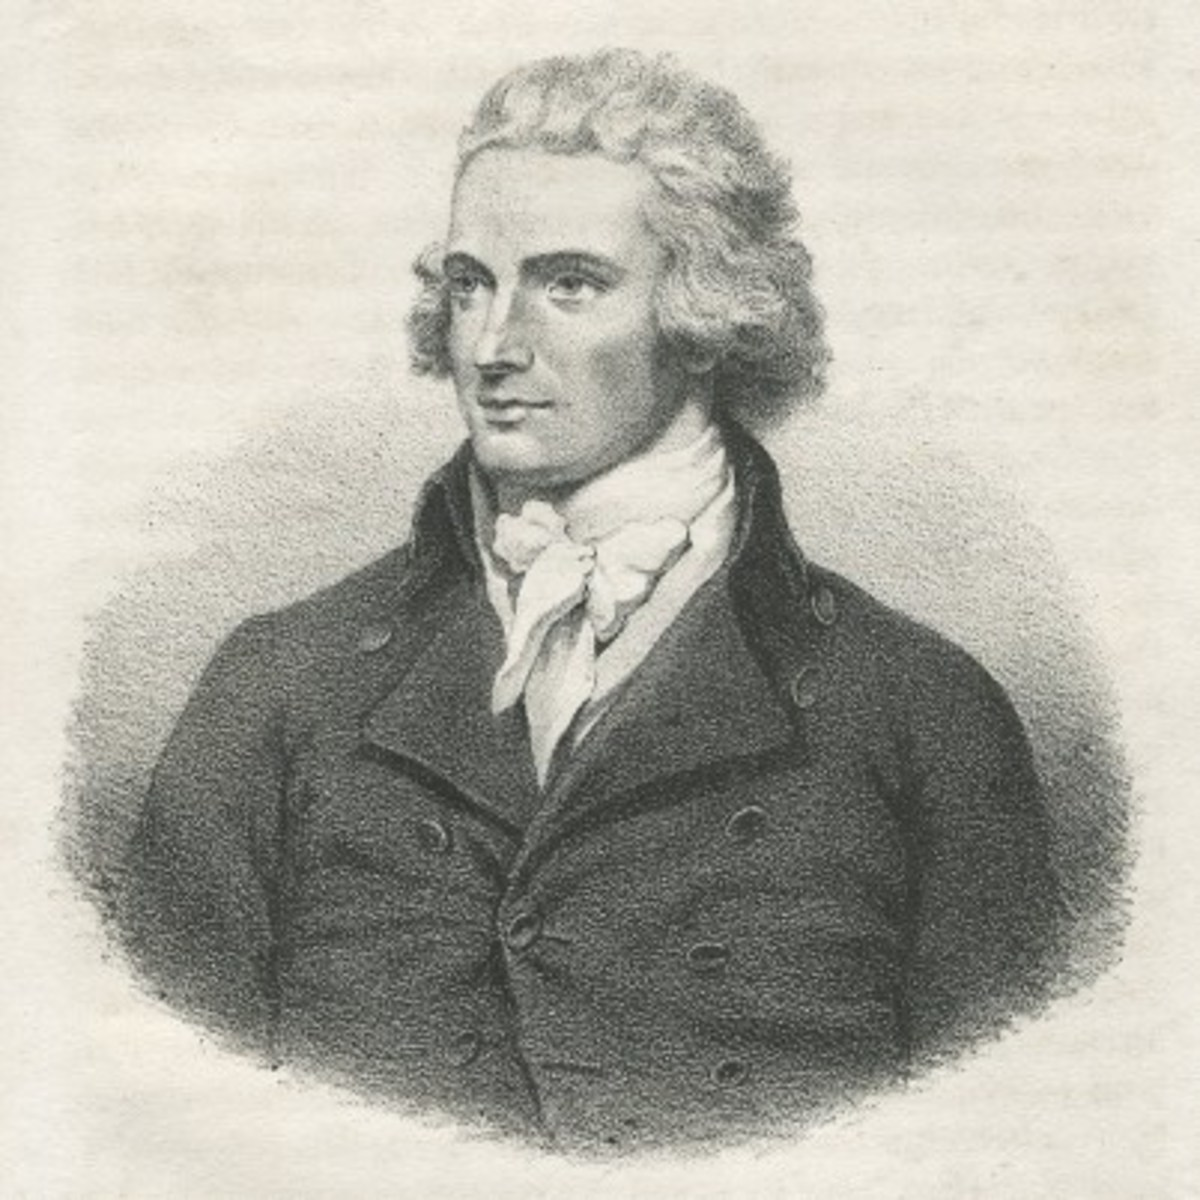 the life and explorations of scottish explorer mungo park Mungo park (1771-1806) park was born in 1771 at foulshiels in the yarrow valley he grew up as a neighbour of walter scott, and later studied medicine at edinburgh university.